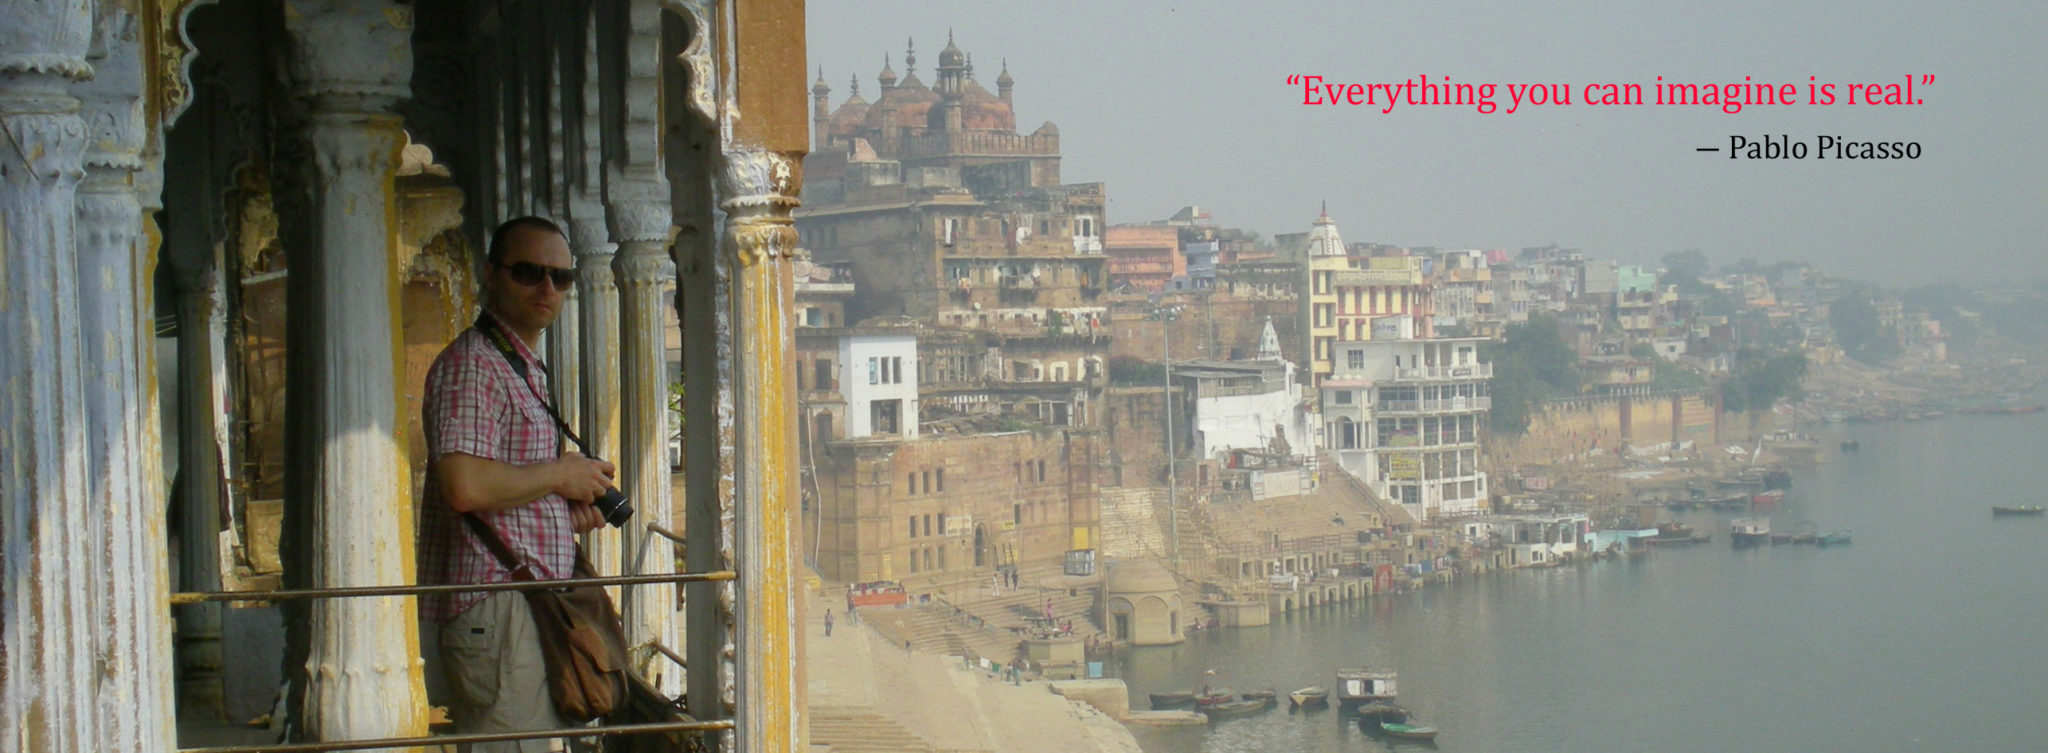 Tomasz Chrusciel enjoying the view of Ganges River, Varanasi India